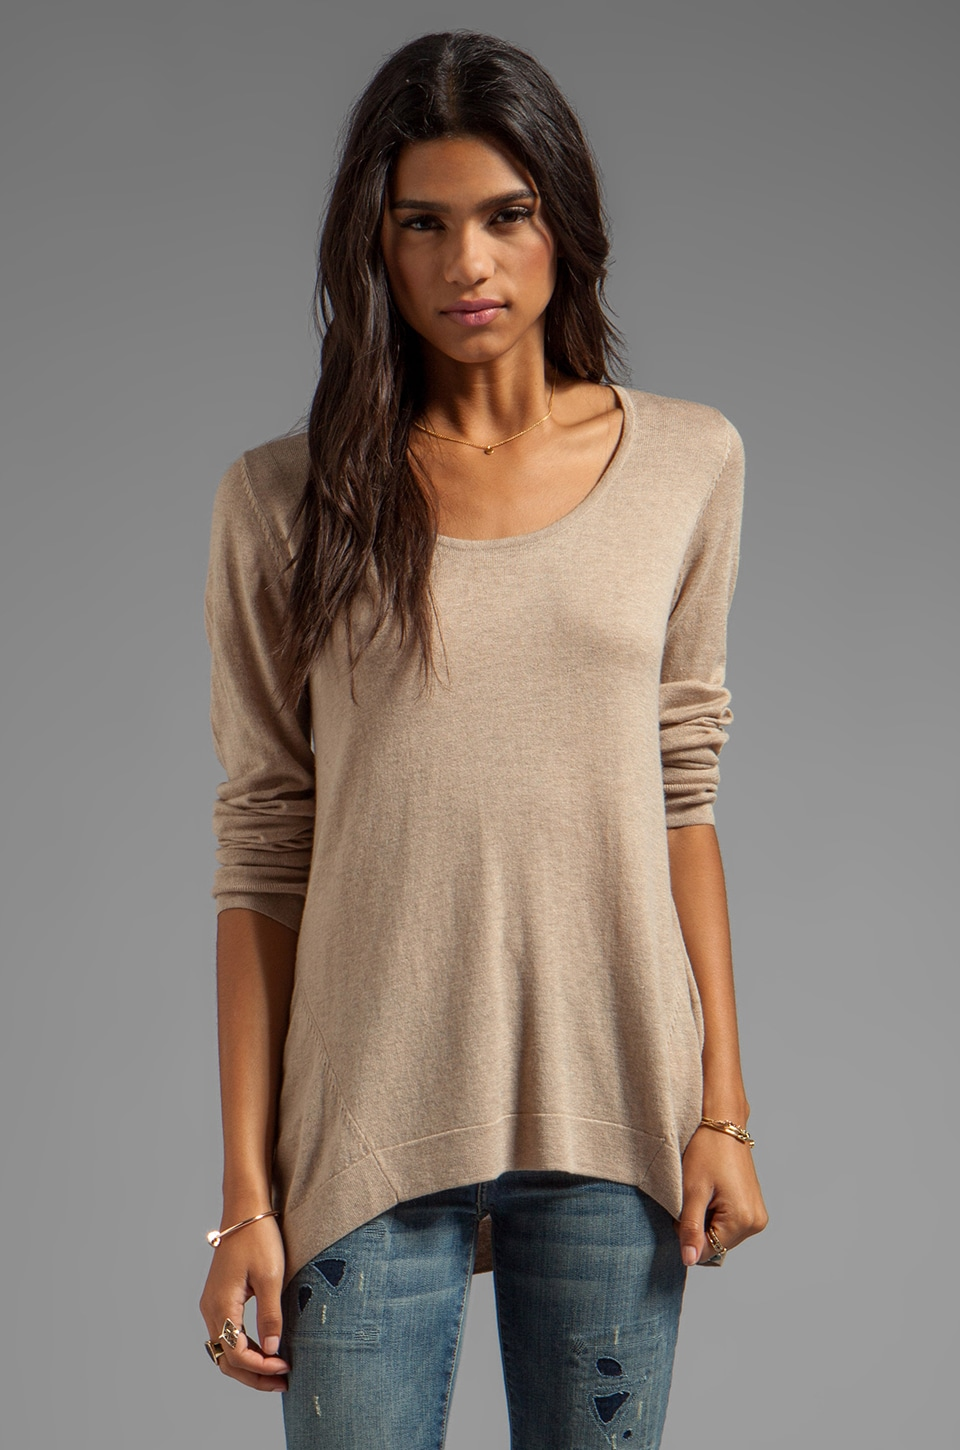 C&C California Solid Cashmere Blend Sweater in Oatmeal Heather